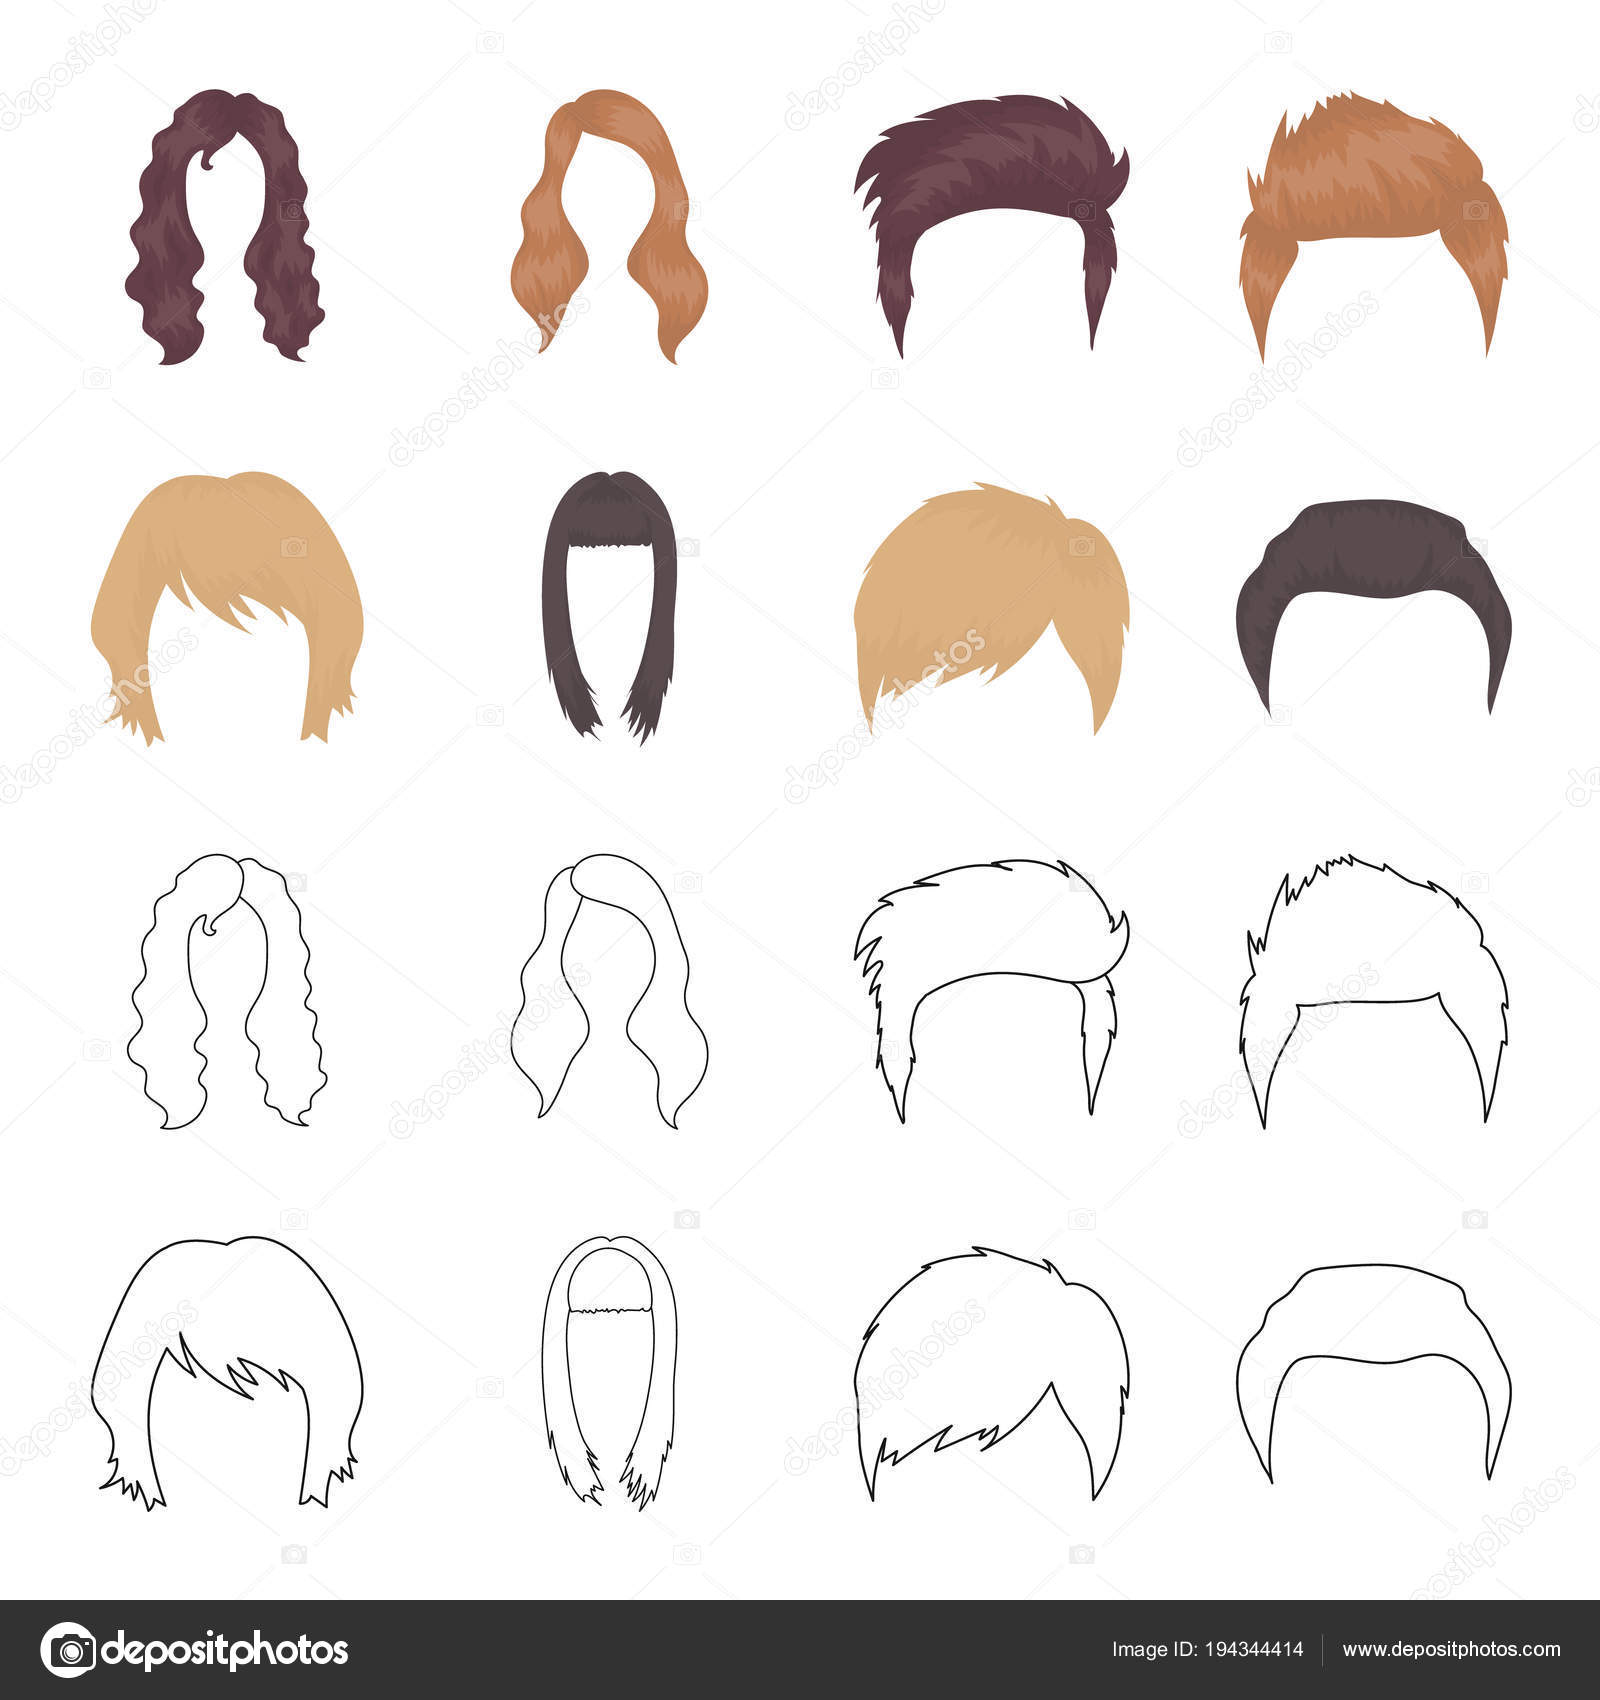 Mustache And Beard Hairstyles Cartoonoutline Icons In Set